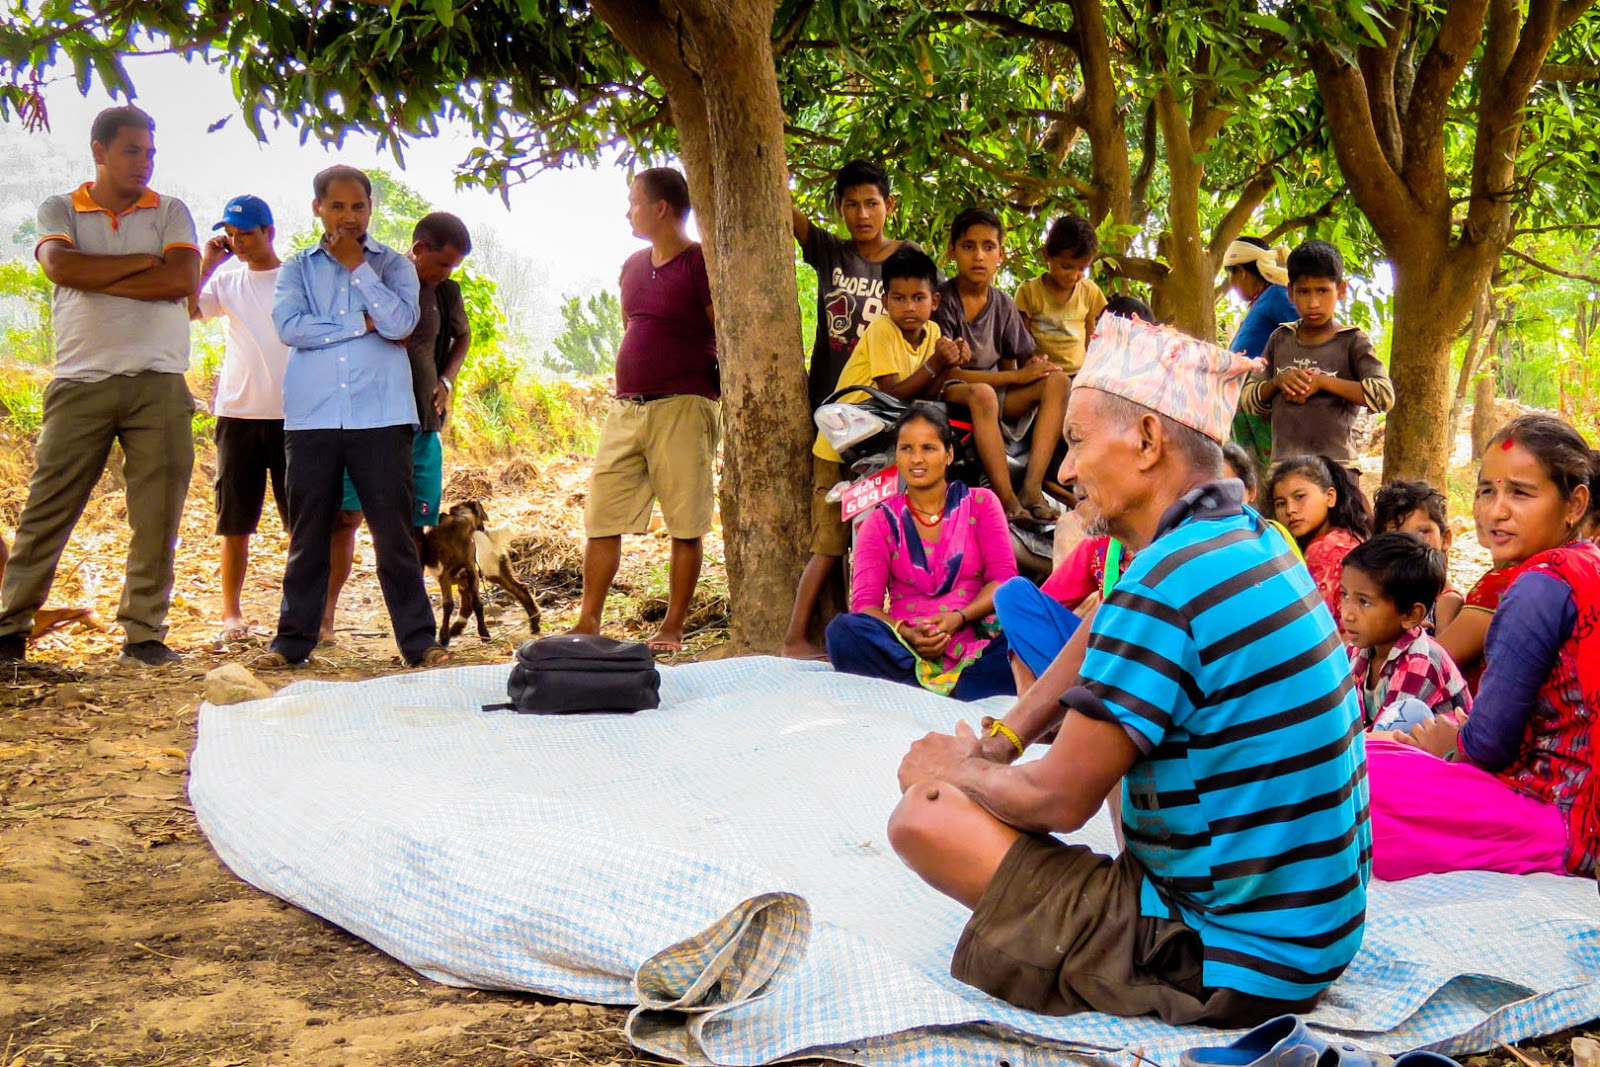 Villagers reflect on their experience and lessons learned during their integrated activity in Hamtad village, in the Rangun Khola watershed. Photo: Liz Kendall/Winrock International